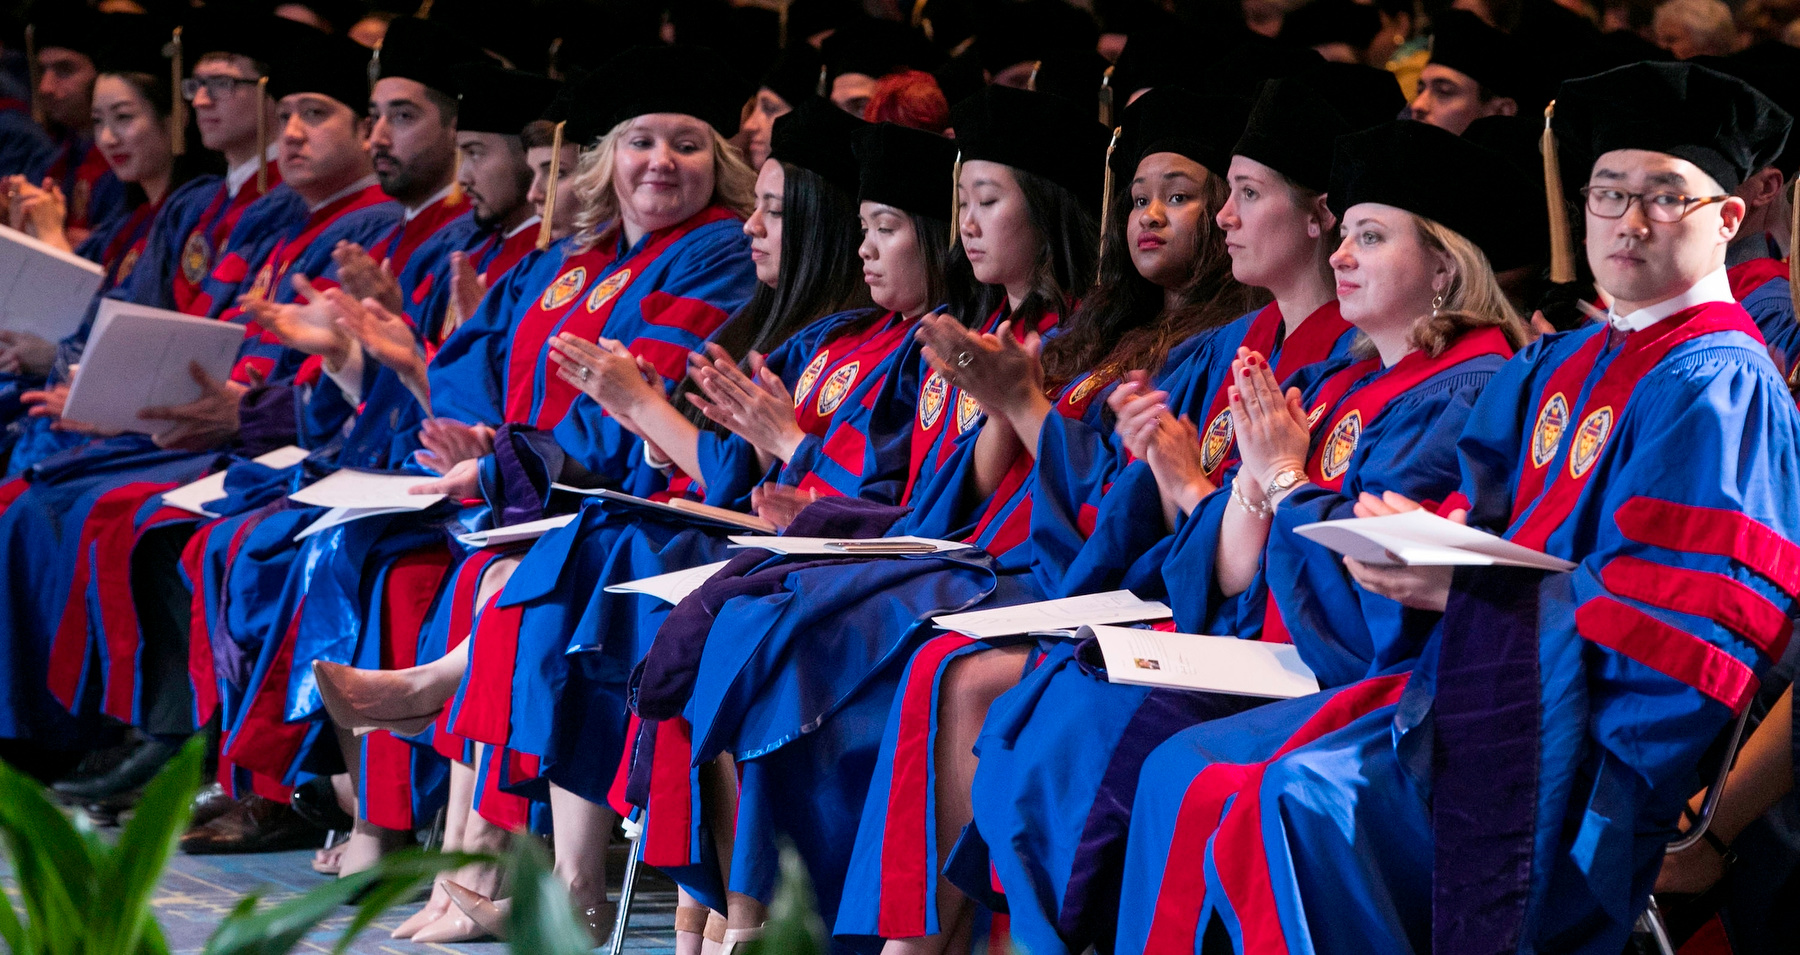 2018 College of Law Commencement